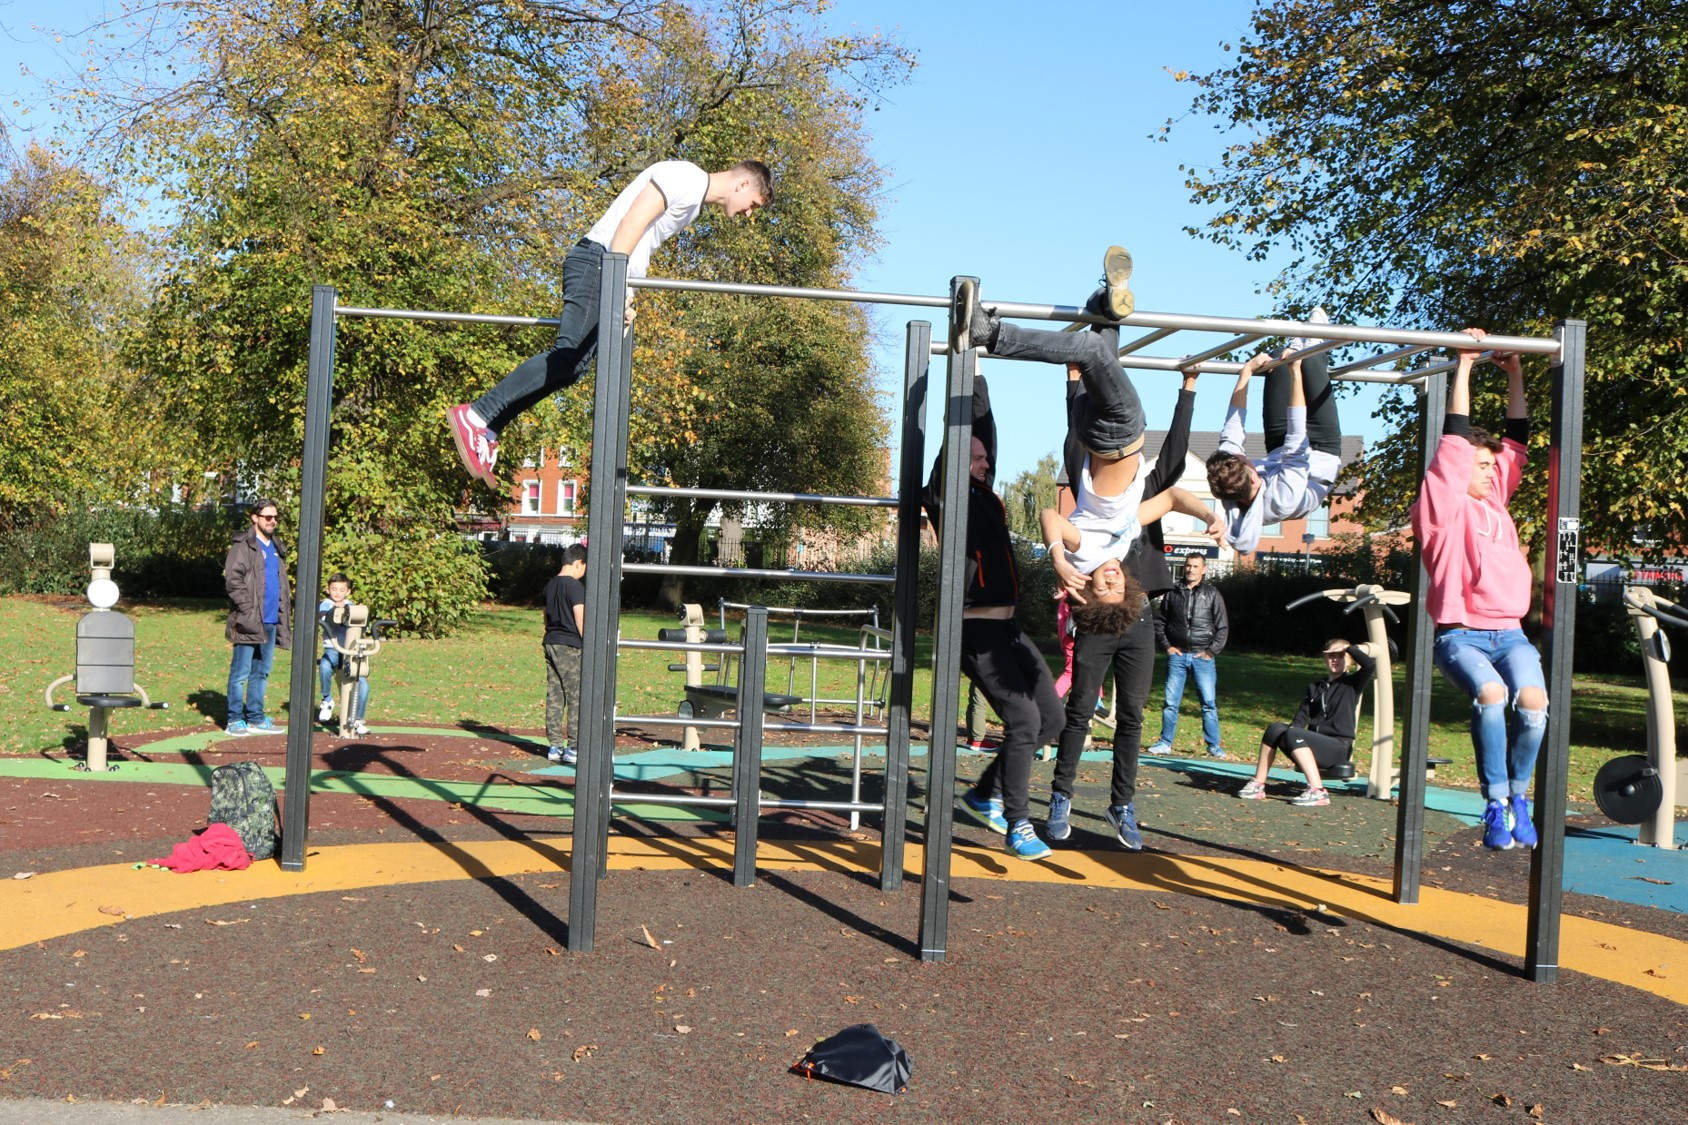 A New Proludic Outdoor Gym For Loughborough Takes